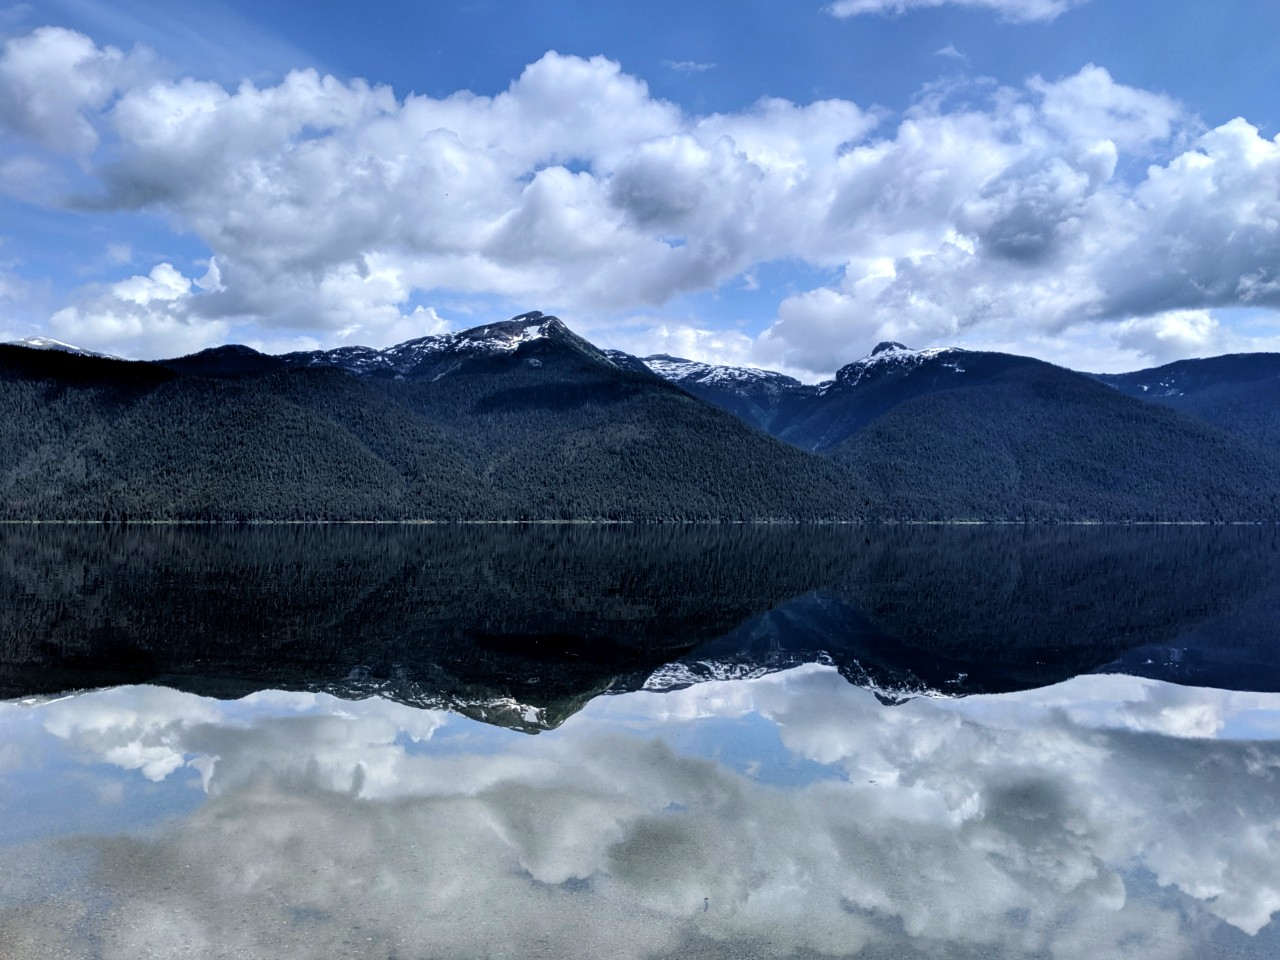 Mirror like reflections on Murtle Lake  of snow capped mountains